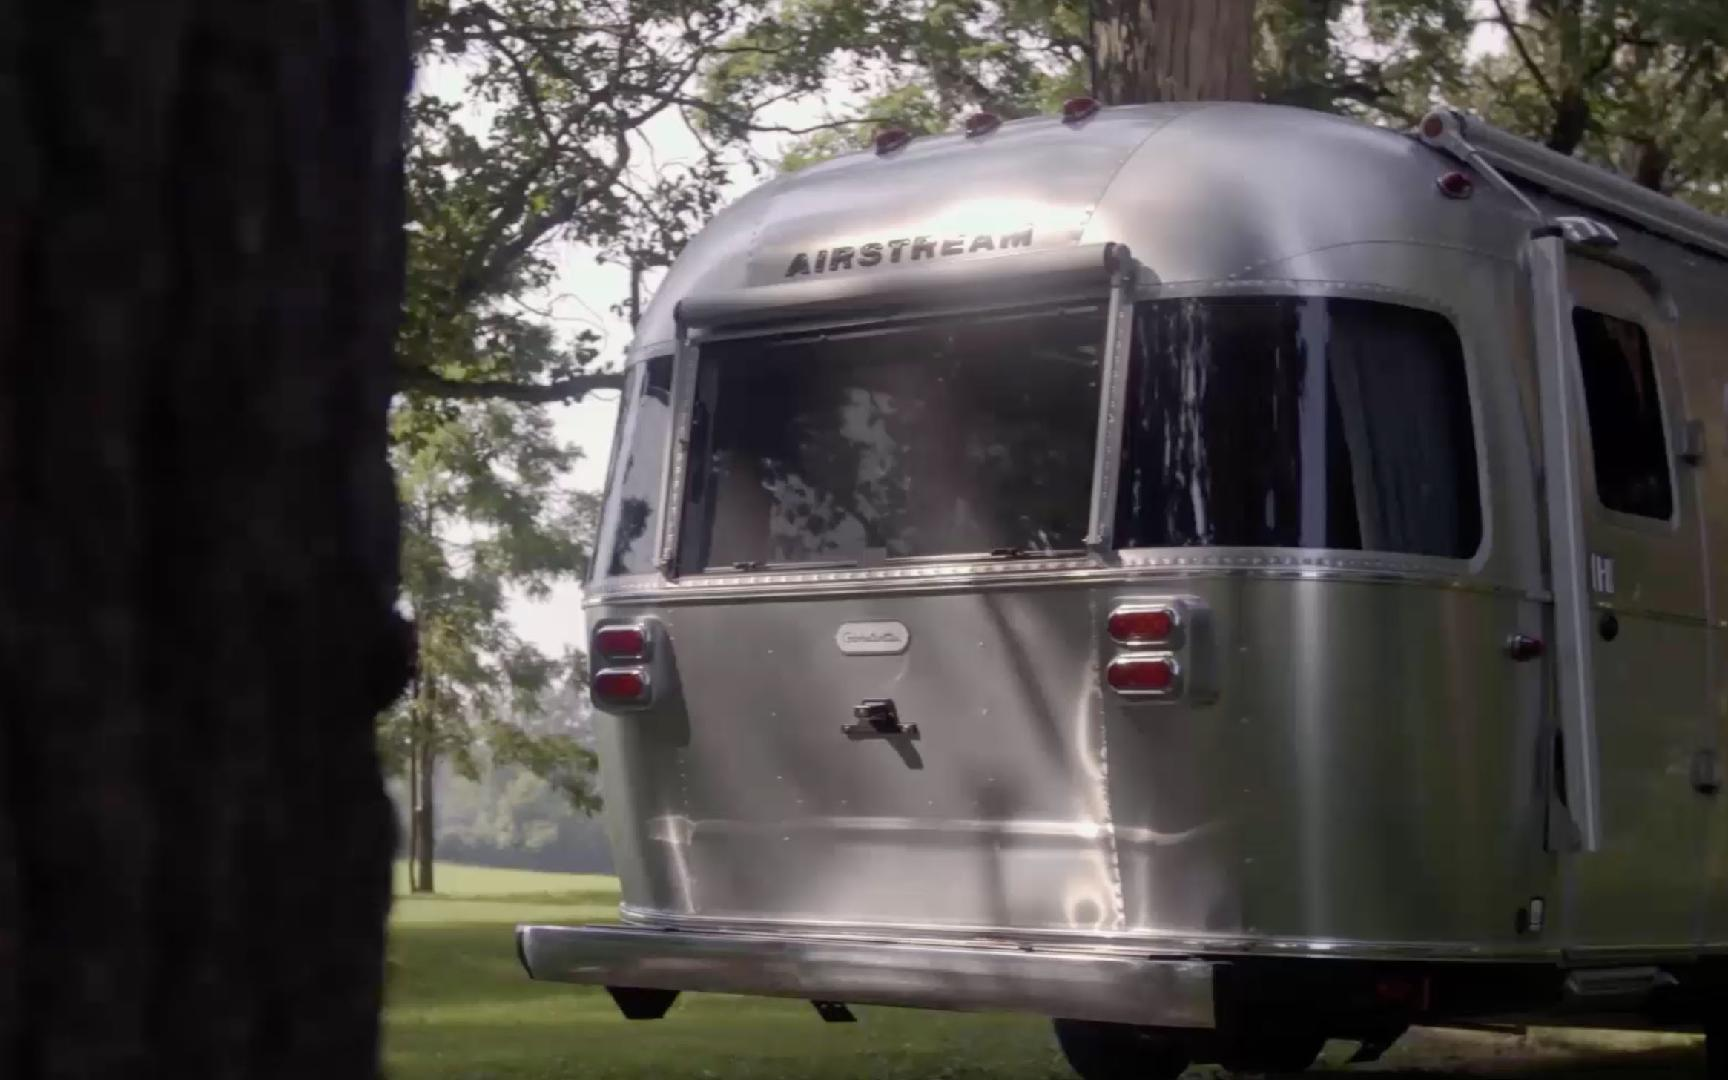 Airstream's Iconic Trailer Just Got a Luxurious Upgrade